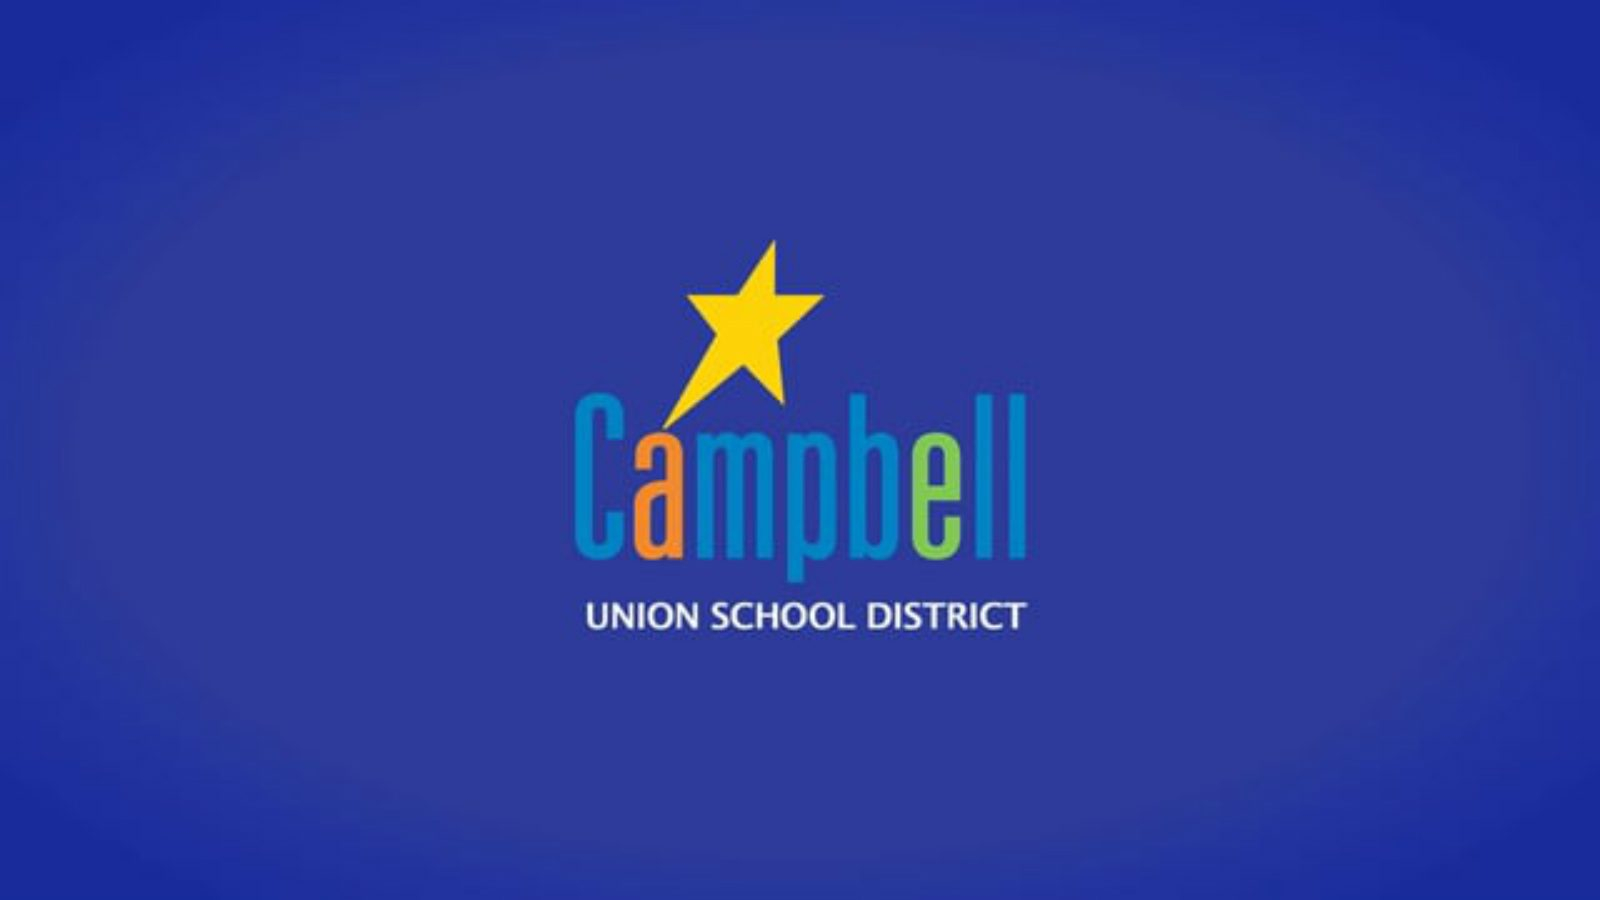 Campbell Union School District Will Save $8.2 Million with 1.5 Megawatts of Solar Capacity